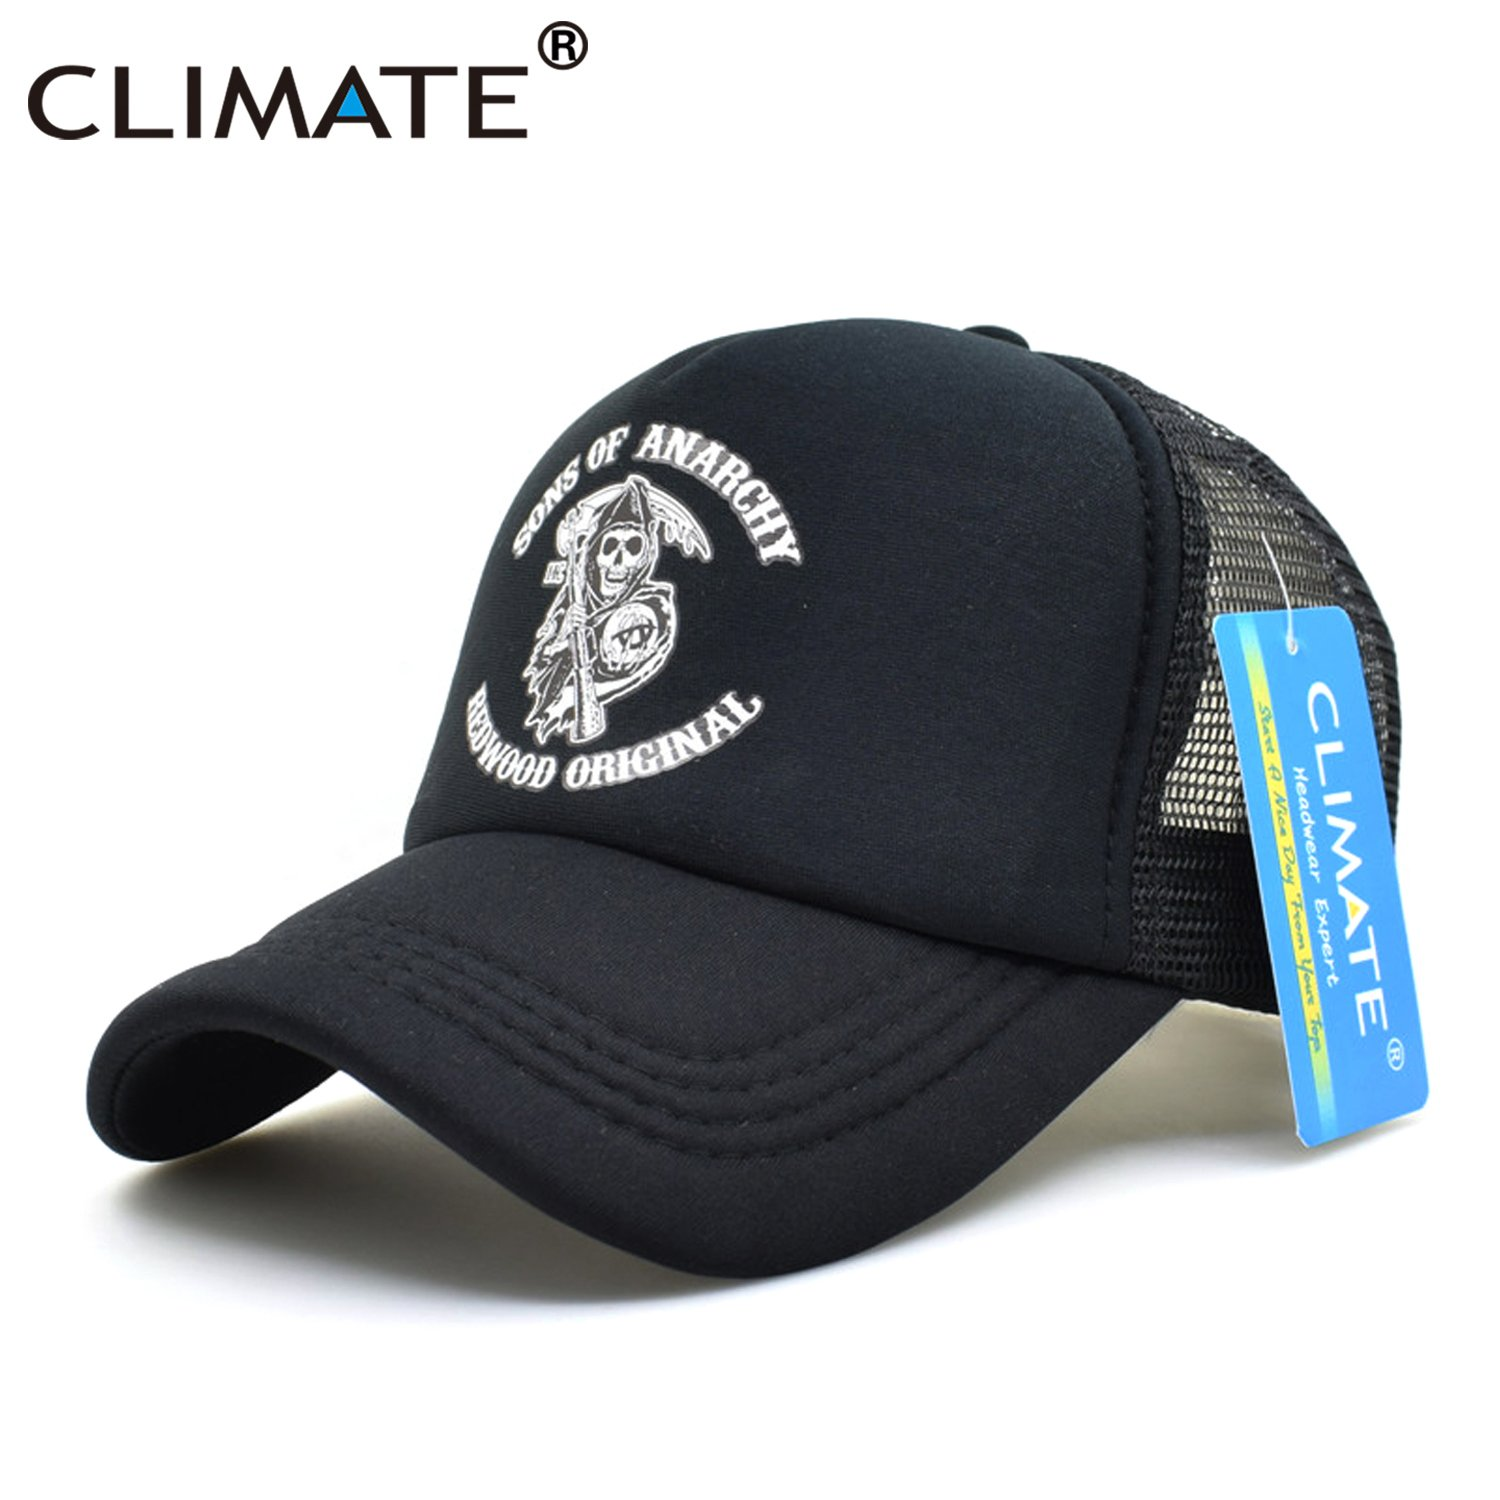 CLIMATE Men Cool Trucker Cap Sons of Anarchy Redwood Death Cool Mesh ... 6e3e44eaccb